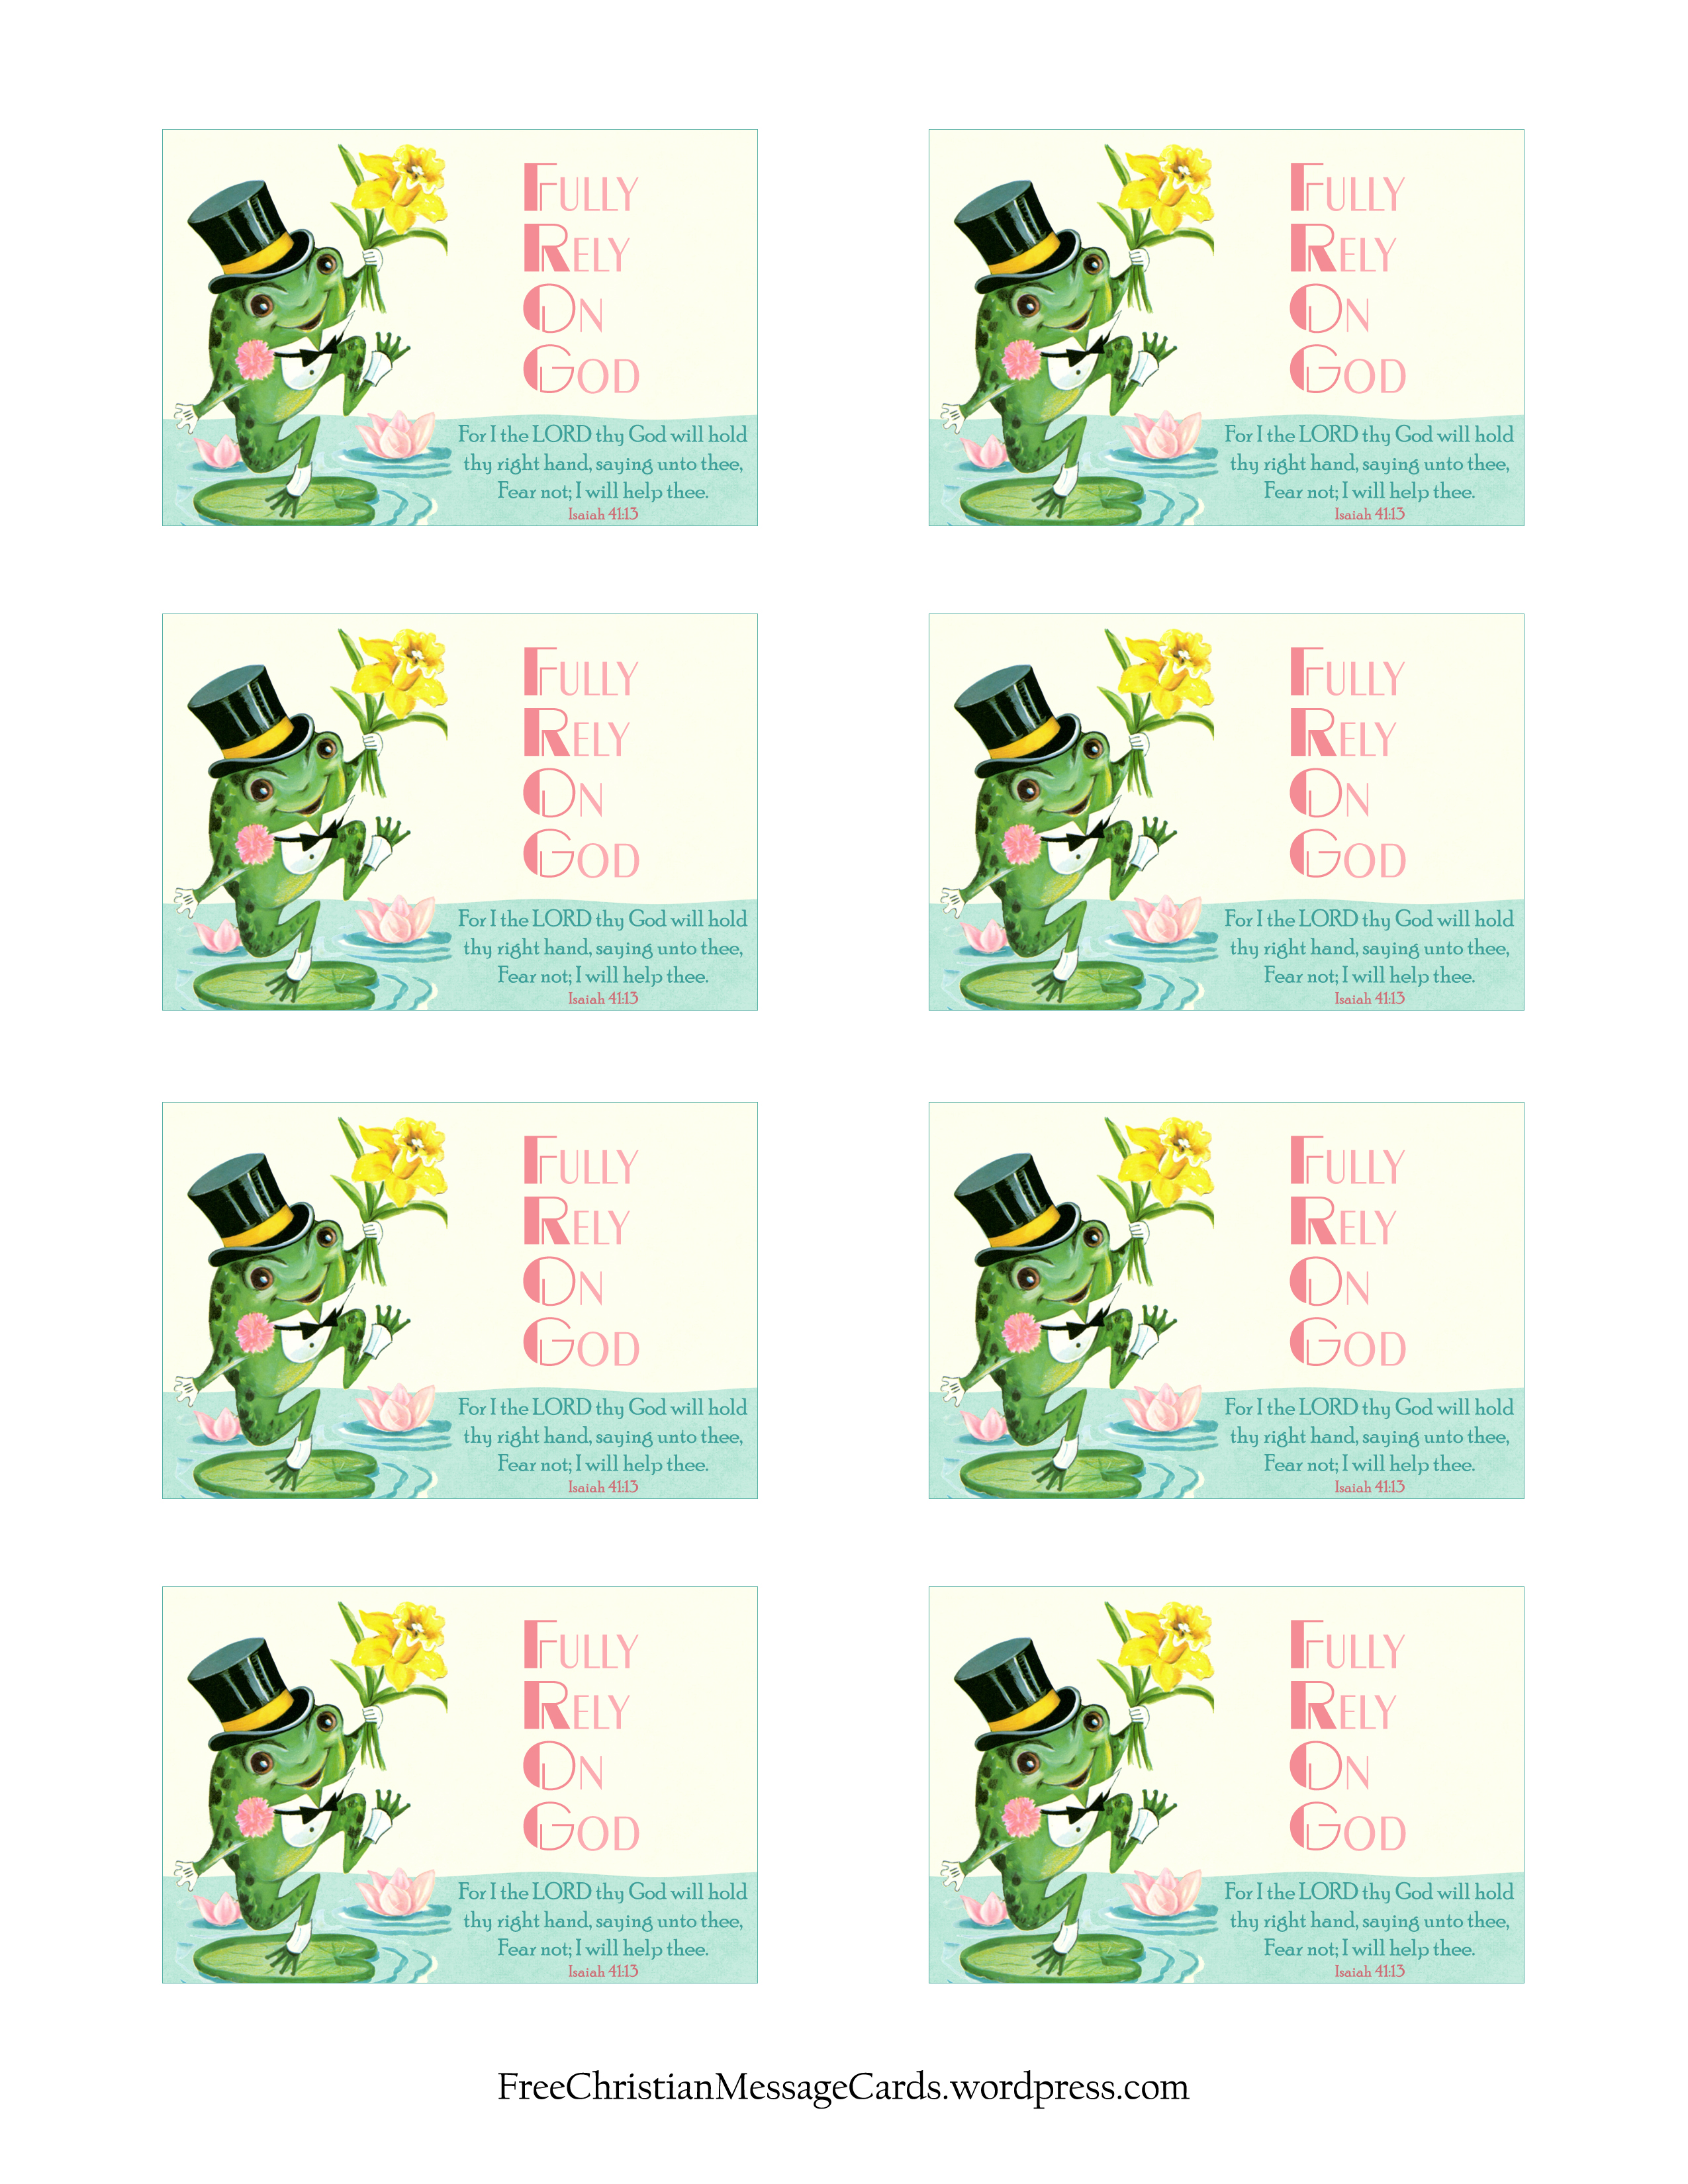 Free Printable Christian Message Cards Fear Not I Will